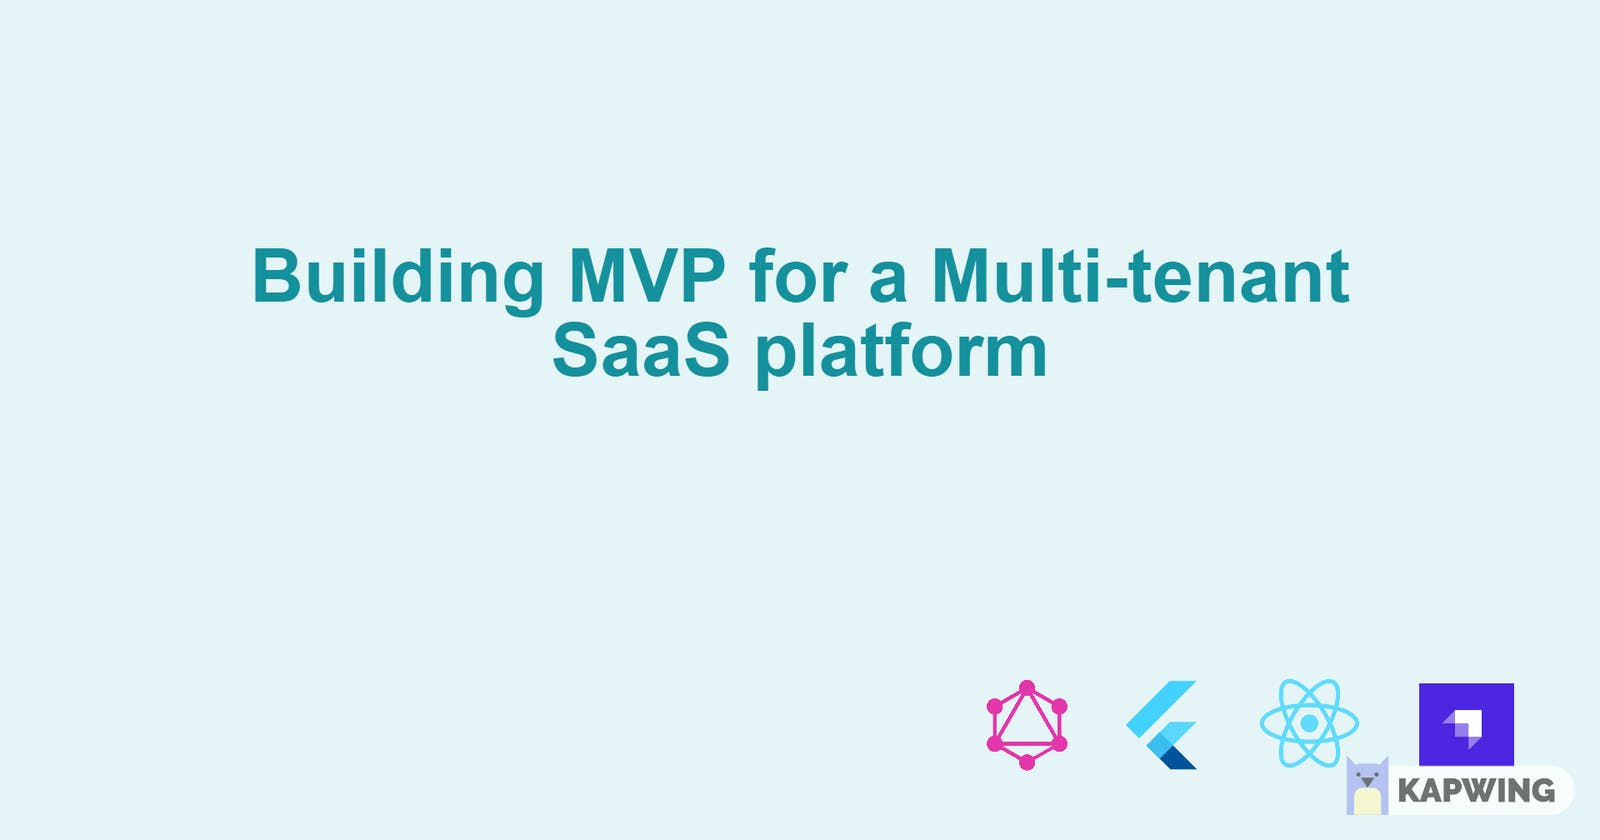 Why I chose Strapi, Flutter, and React for building an MVP for a Multi-tenant SaaS